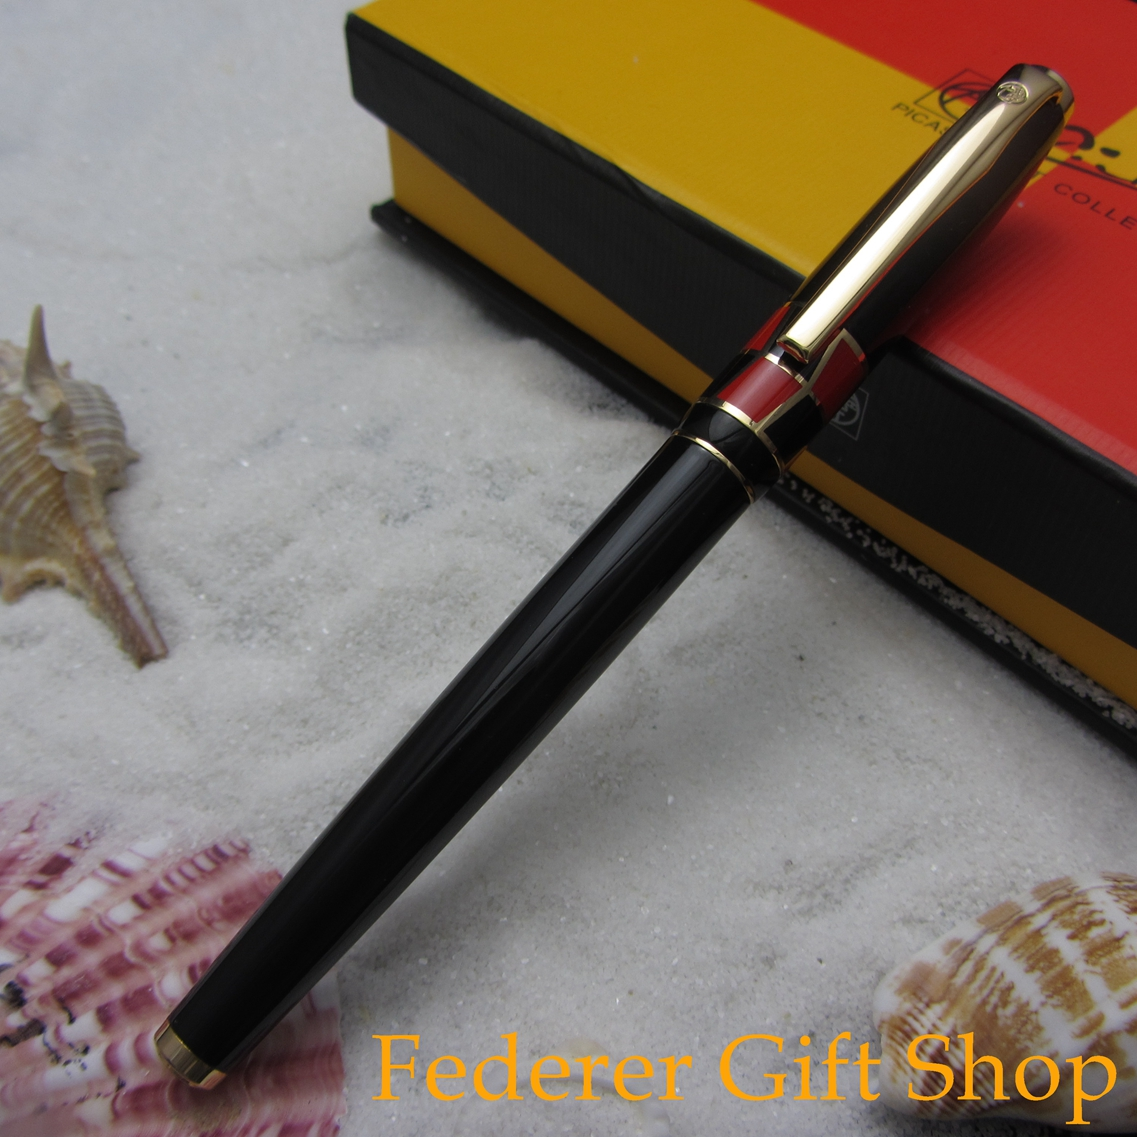 Picasso P923 Braque Series Black Fountain Pen Gift The School Office Supplies Metal Case Ink Pen F Nib 3 Color Optional high quality monte mount snake clip f nib metal office gift fountain pen